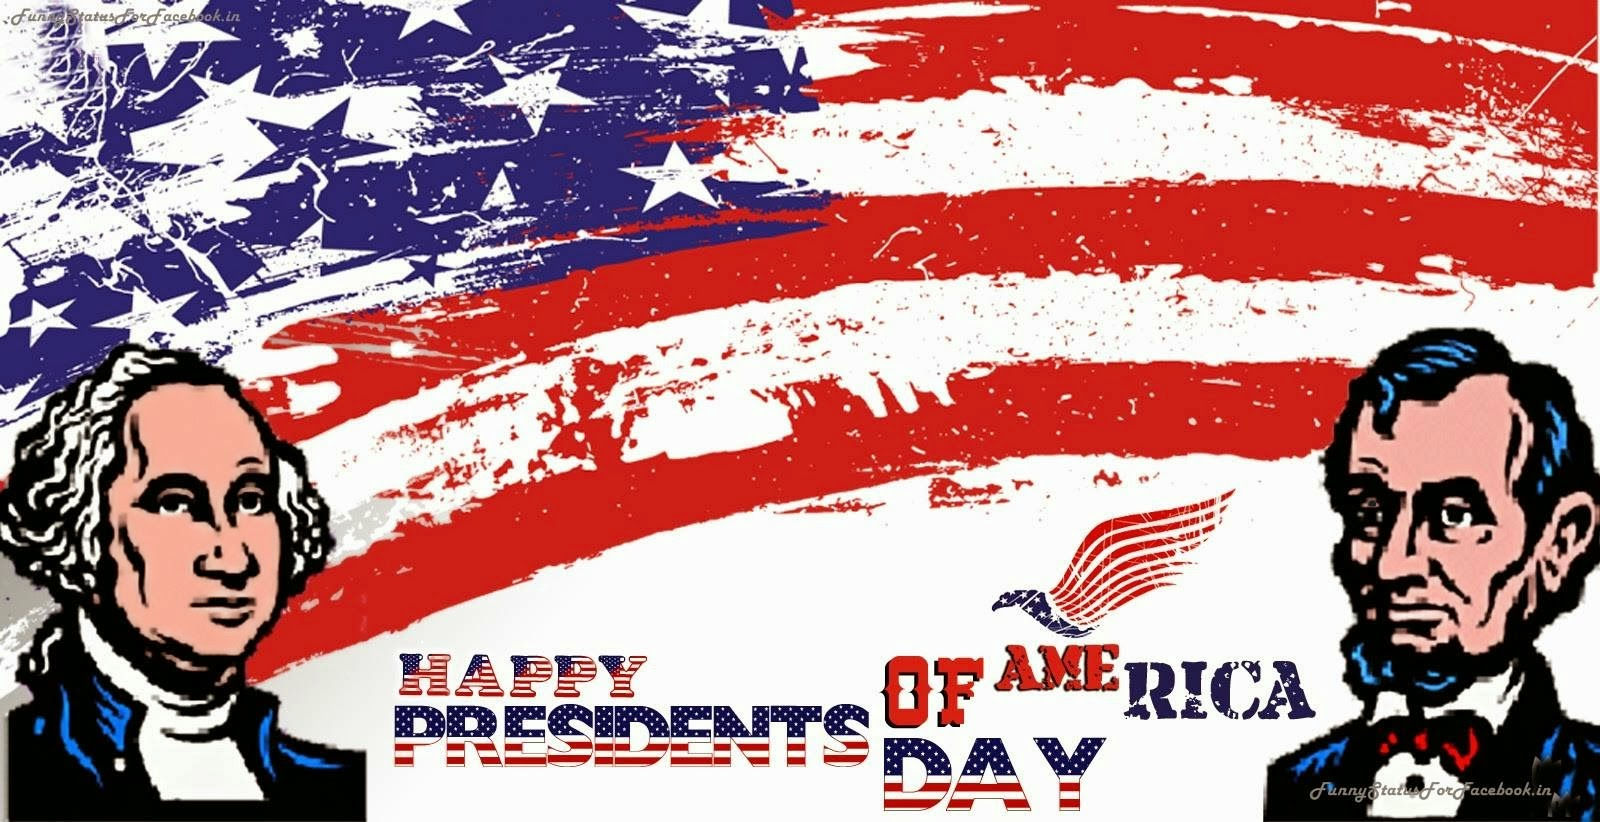 Presidents day 2015 Facebook Cover pic, images, Timelines Cover, gif